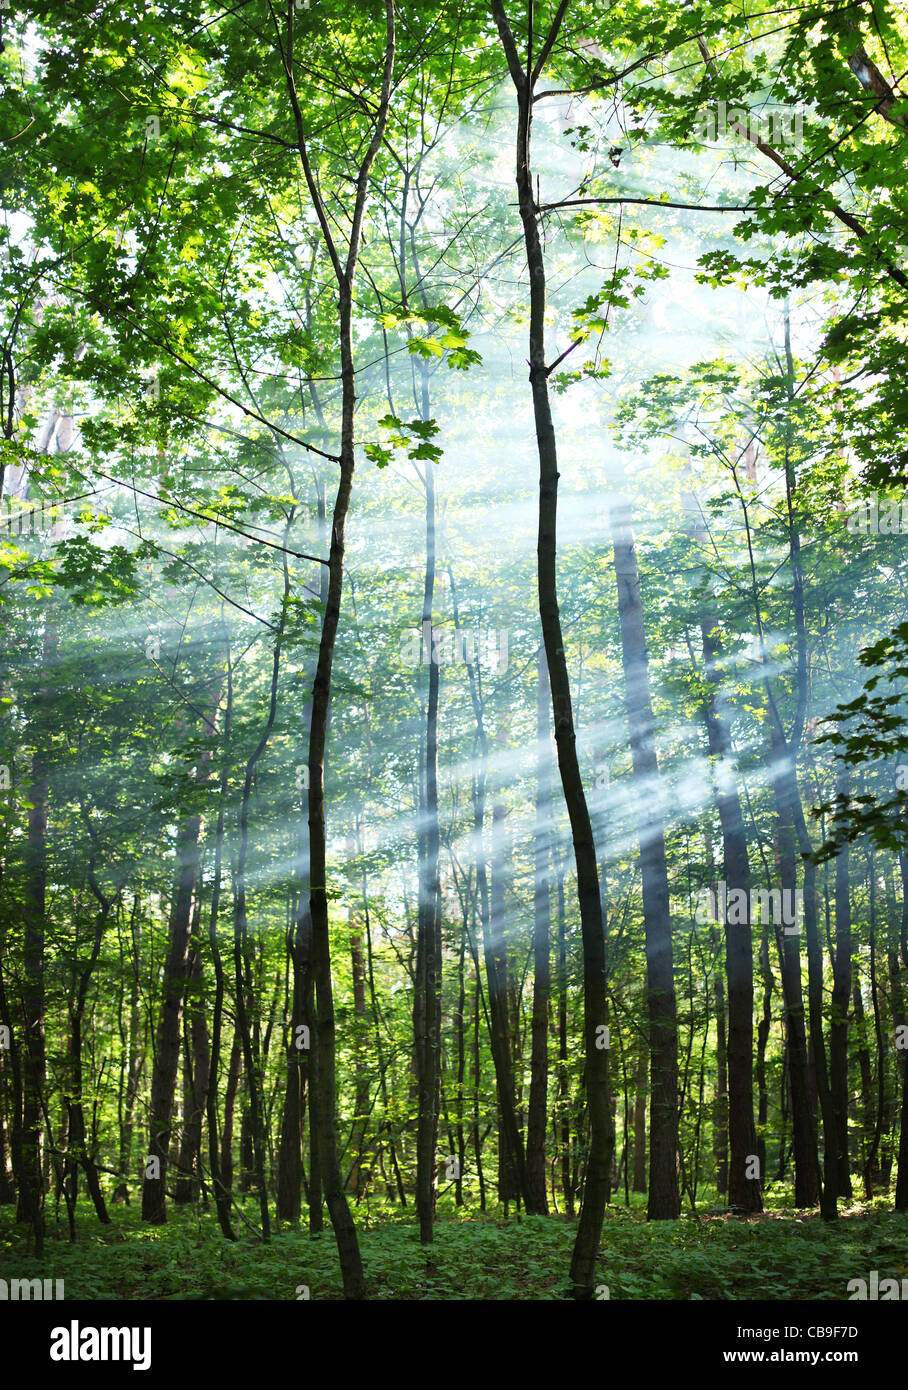 The sun's rays shining through the trees in the forest. Stock Photo